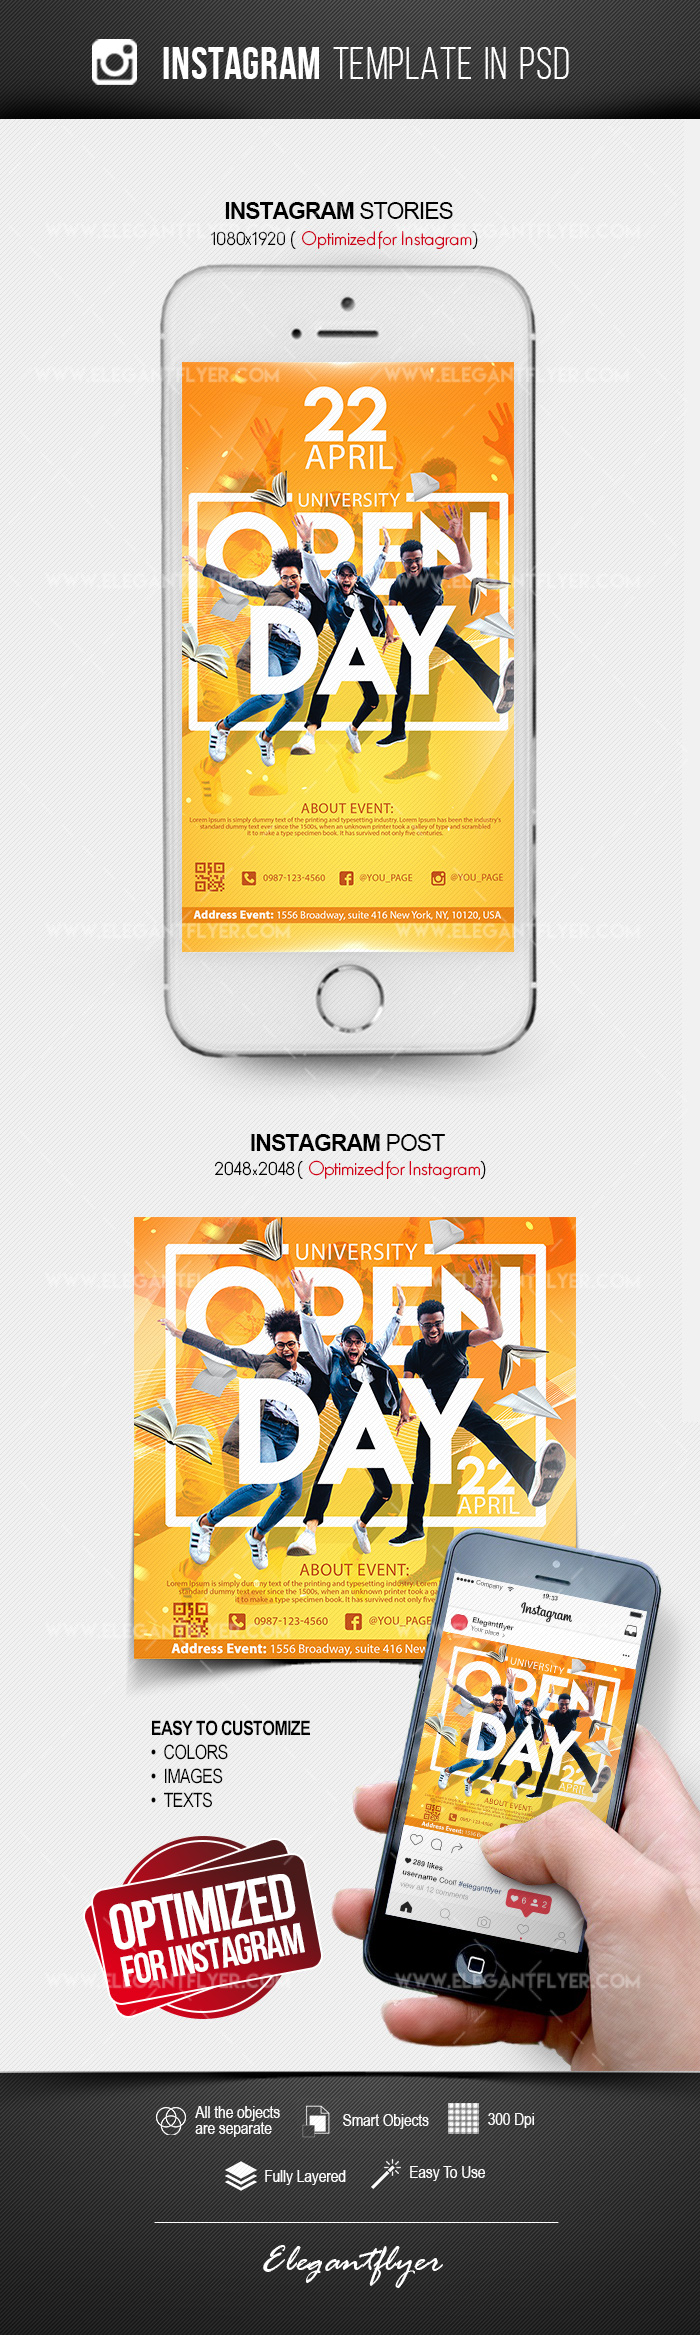 University Open Day – Free Instagram Stories Template in PSD + Post Templates